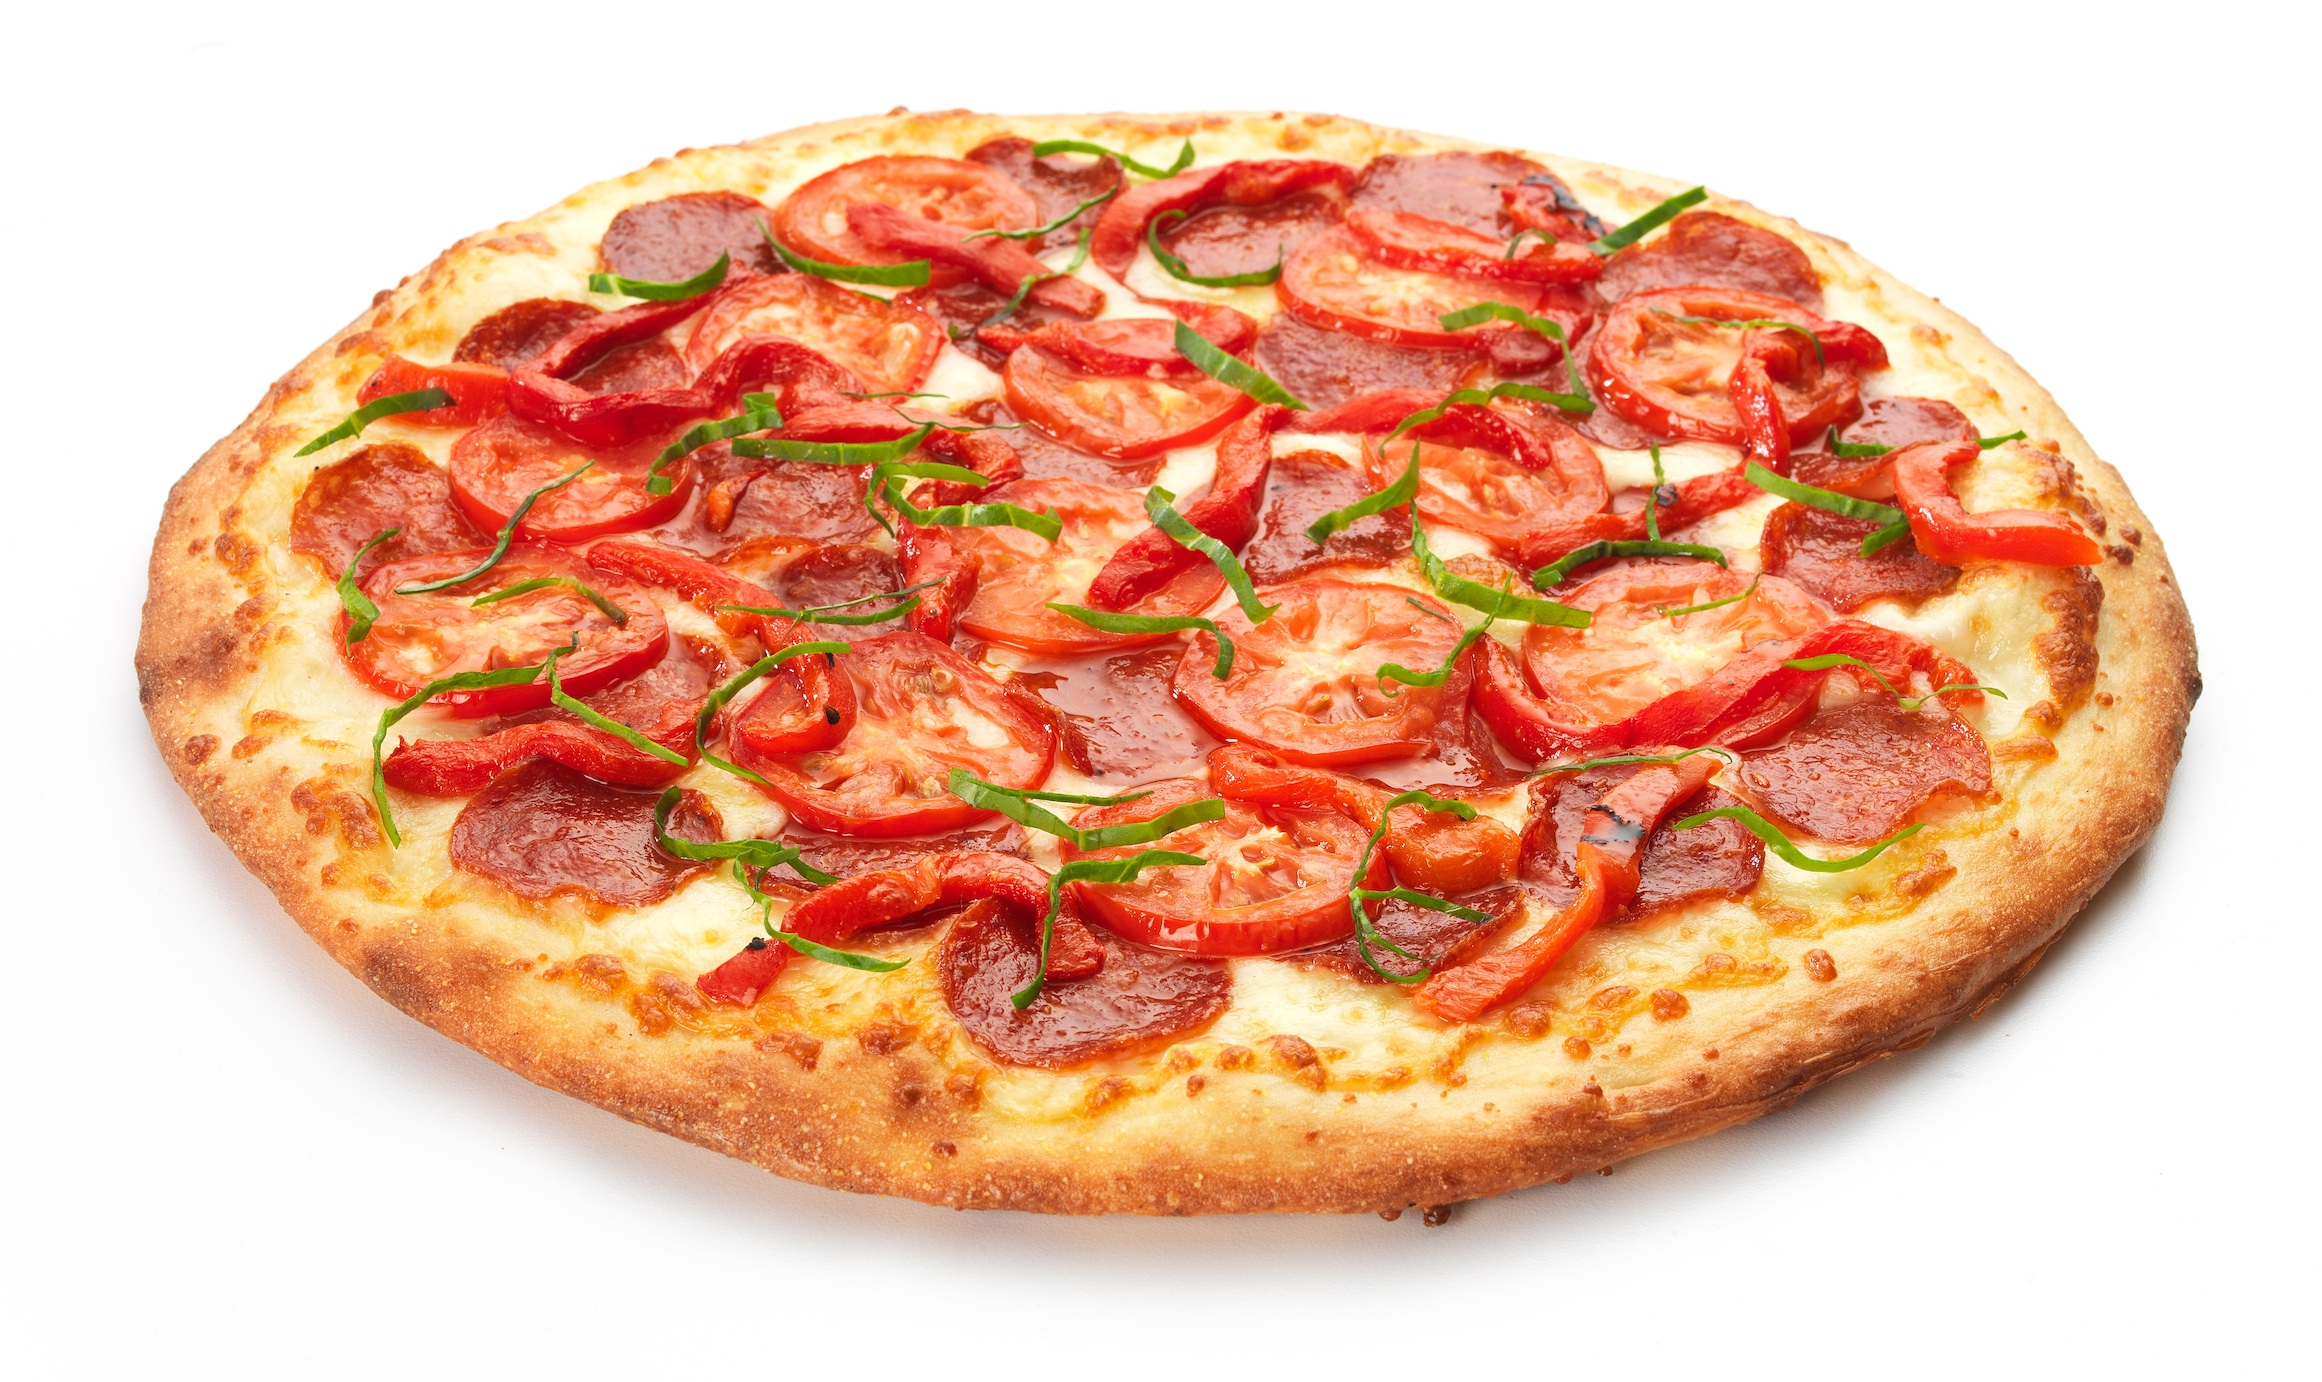 pizza wallpapers high quality download free